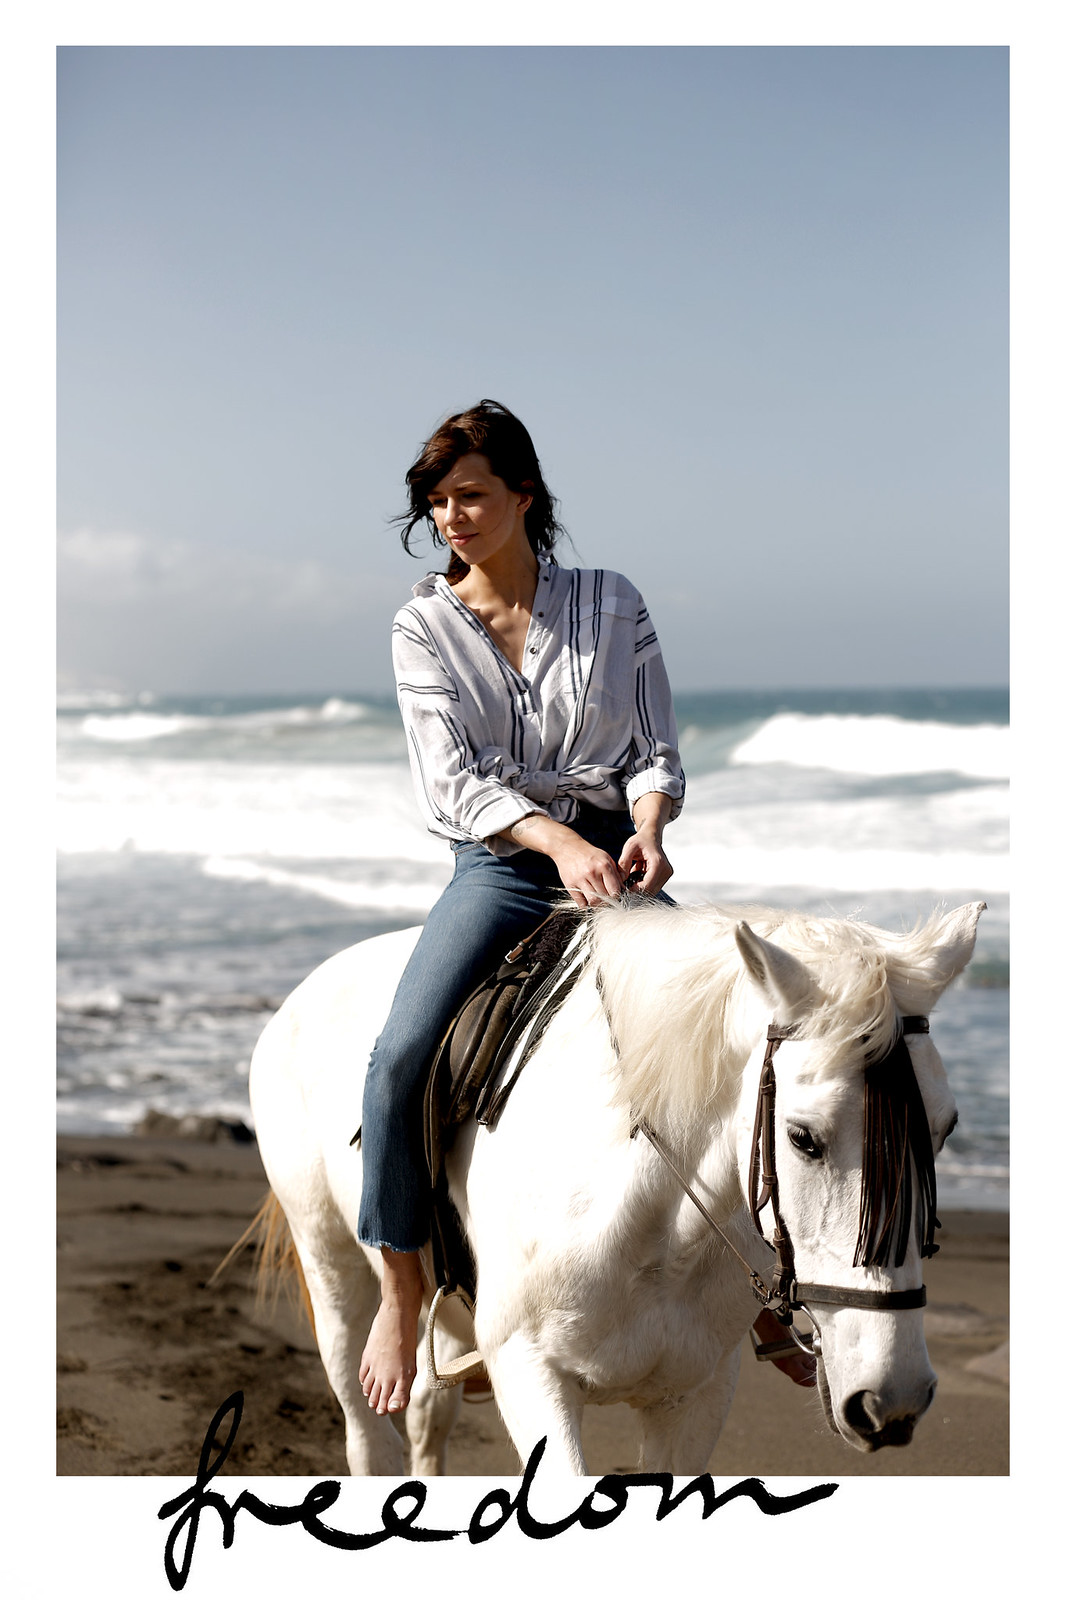 riding fuerte fuerteventura horse white reiten ausritt beach water ocean waves wild freedom happiness vila stripe blouse levi's jeans girl dreaming cats & dogs fashionblog modeblogger ricarda schernus berlin styleblog deutschland 1